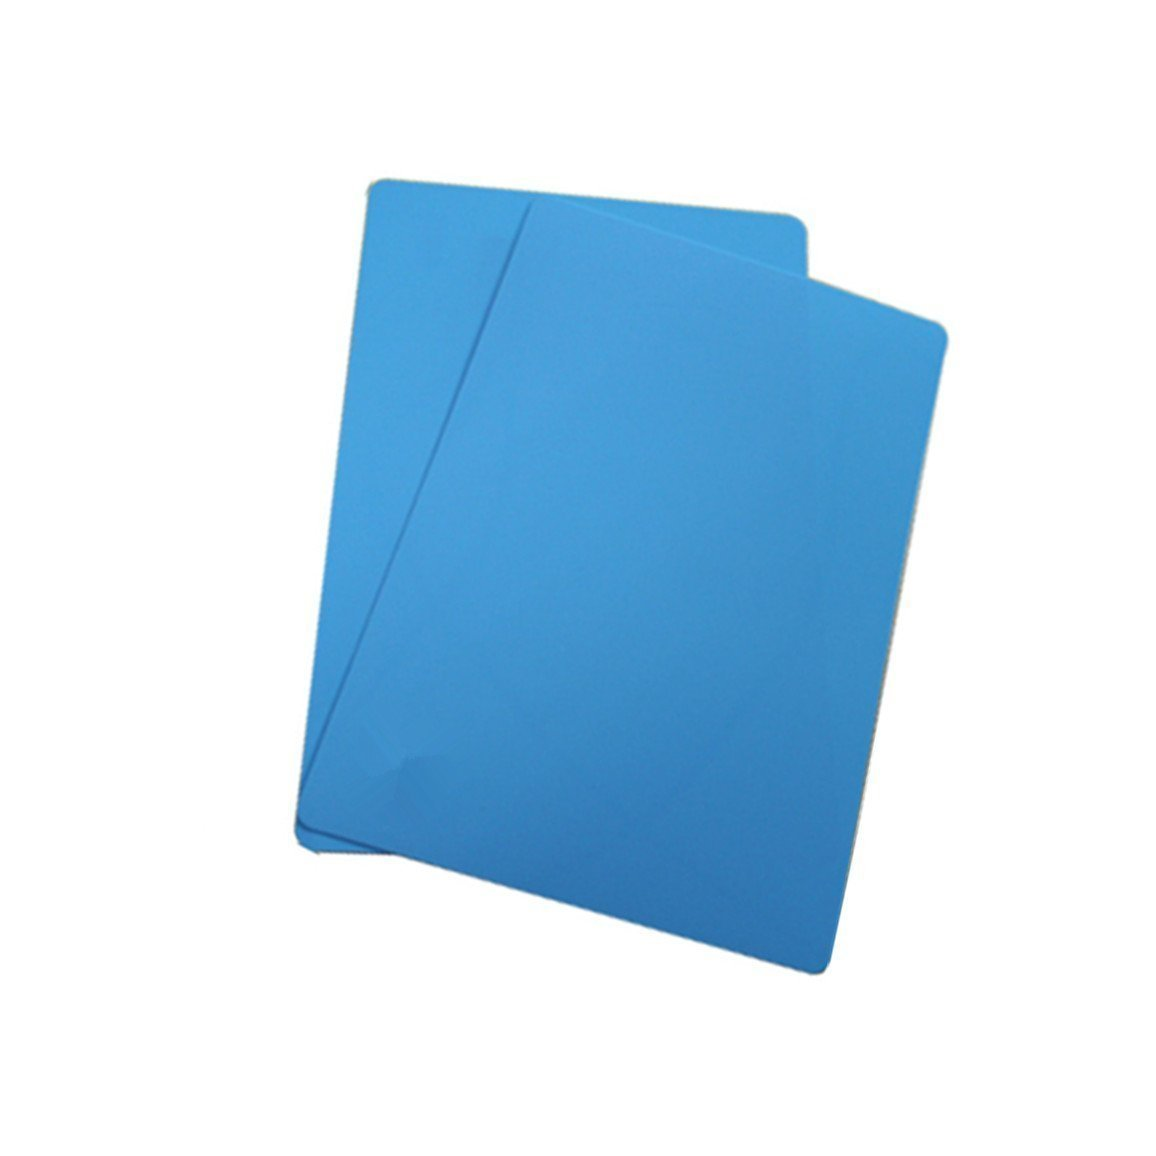 Home Mart Durable Desk Mat Beautiful Writing Pad Writing Surface Educational Supplies Bring A Smooth Writing Experience For Student Writer Blue